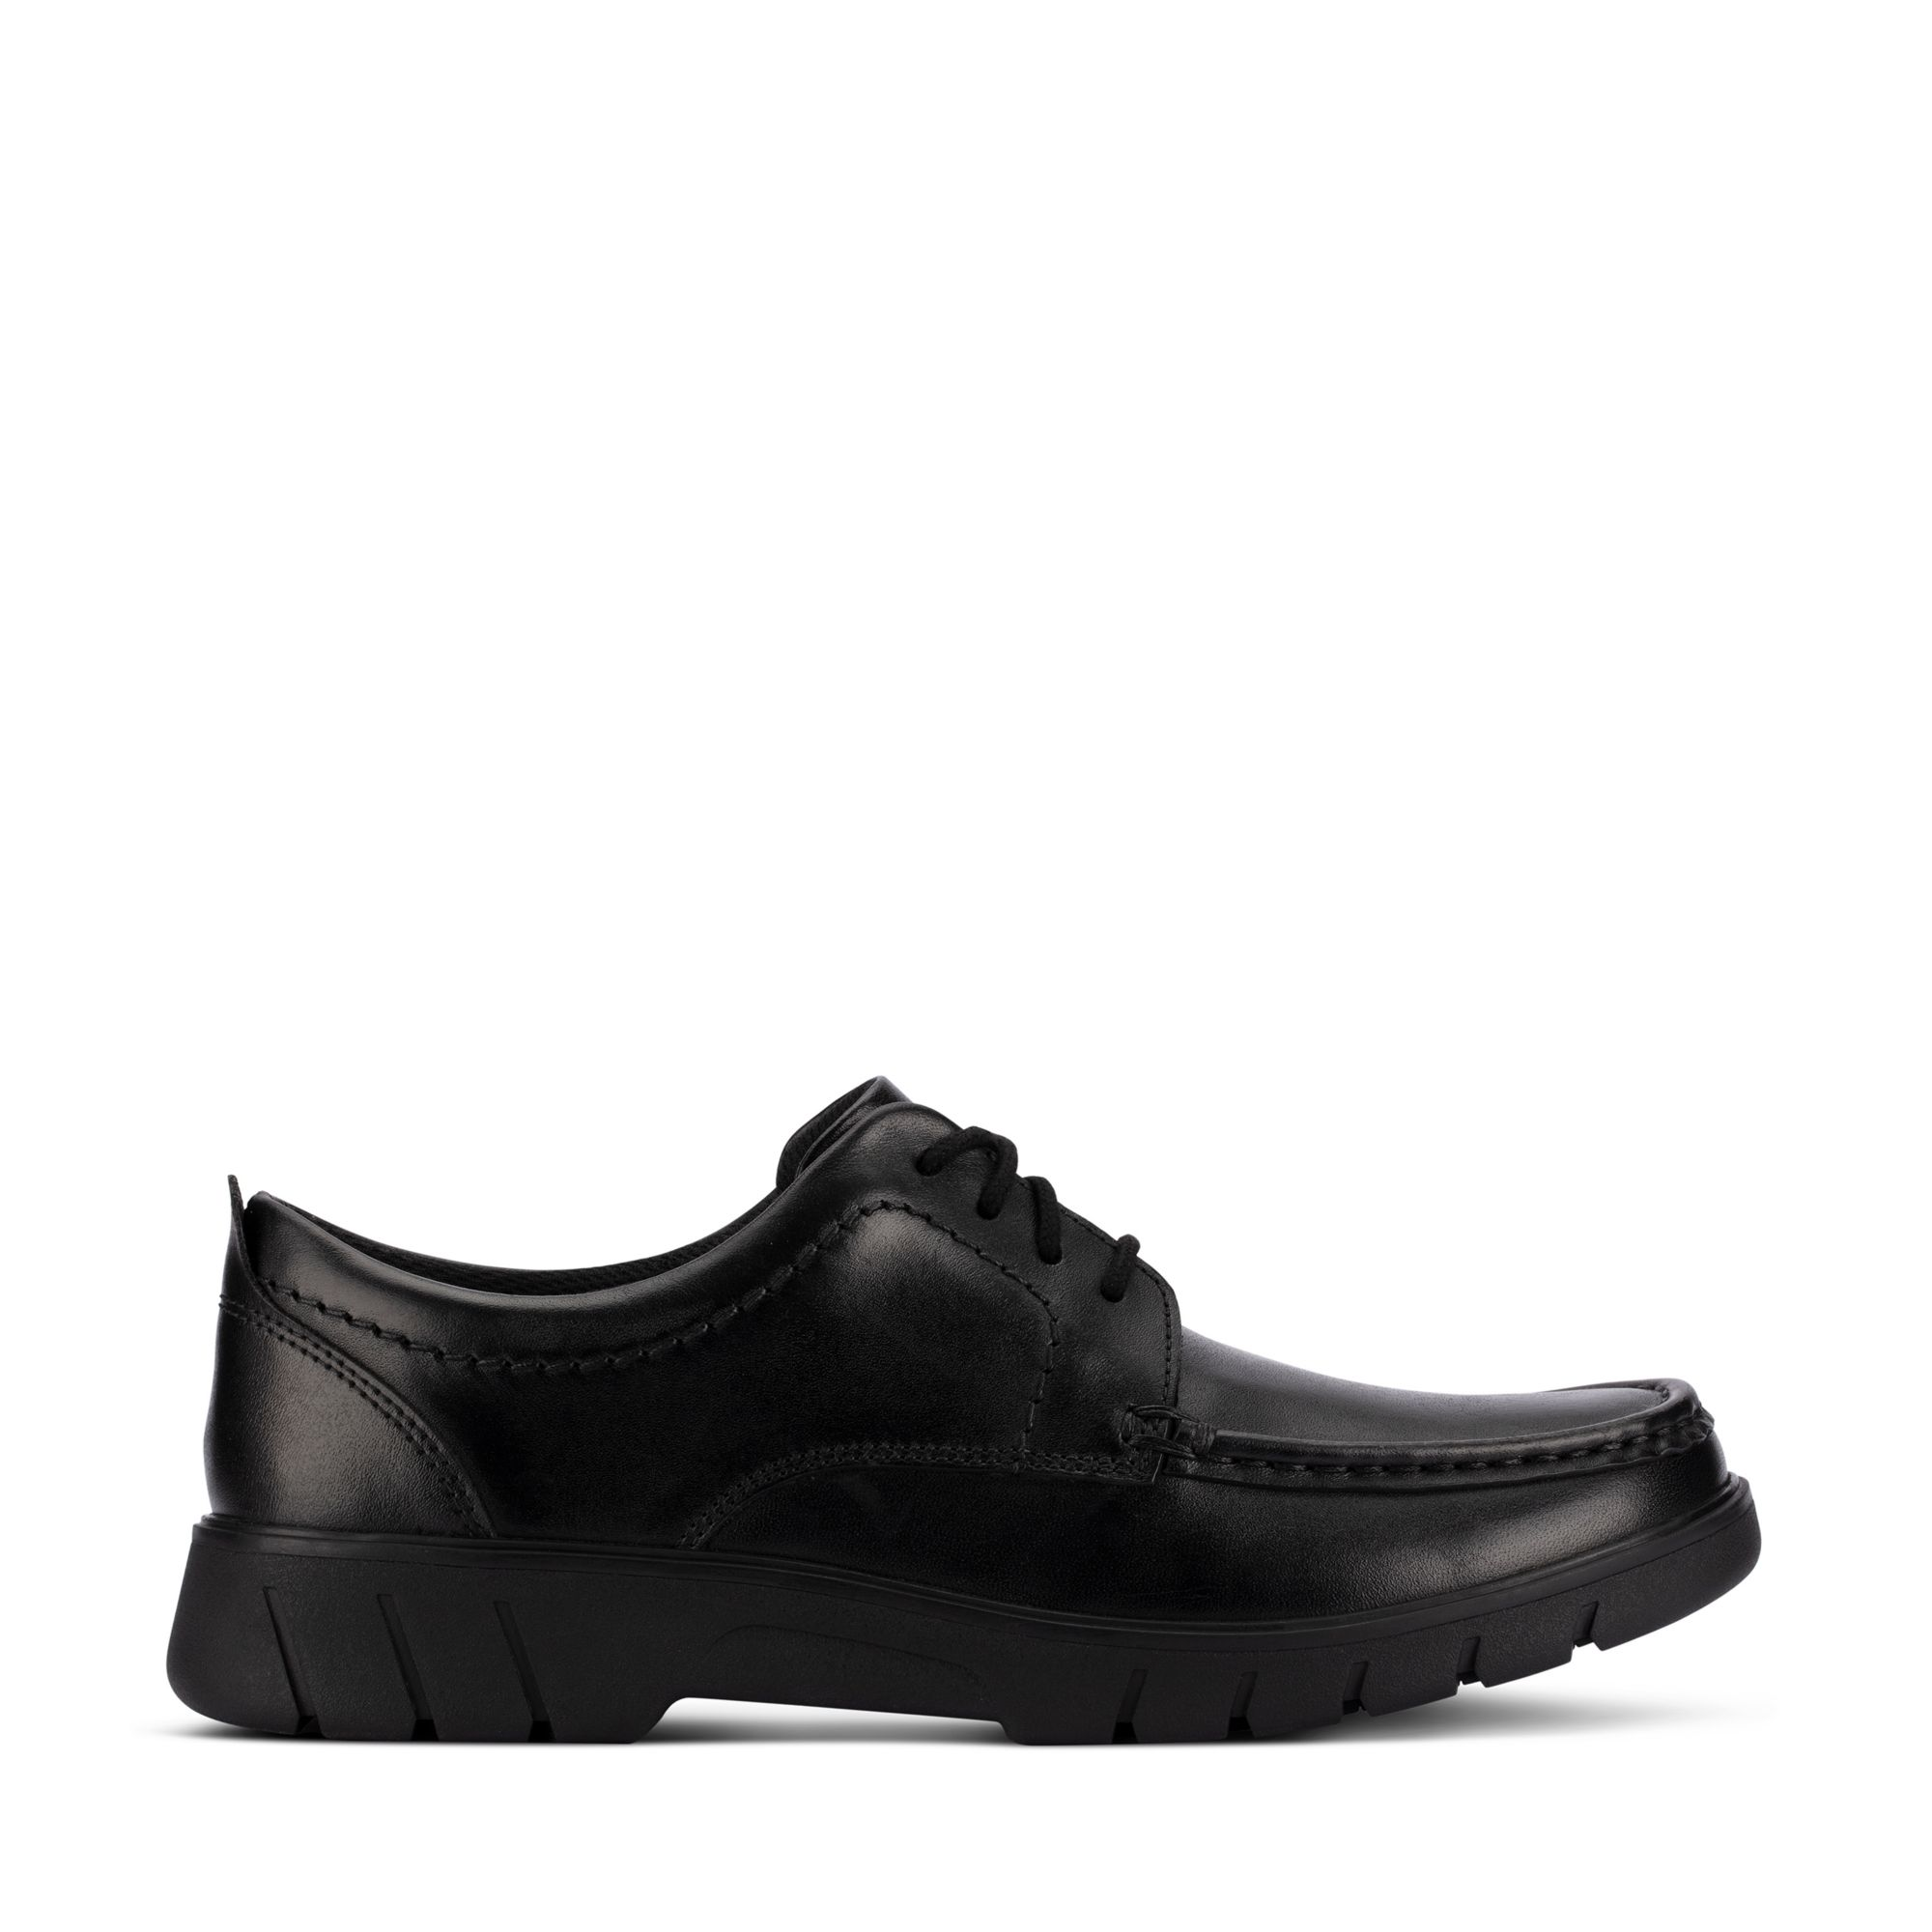 Clarks Branch Lace Youth – Leather